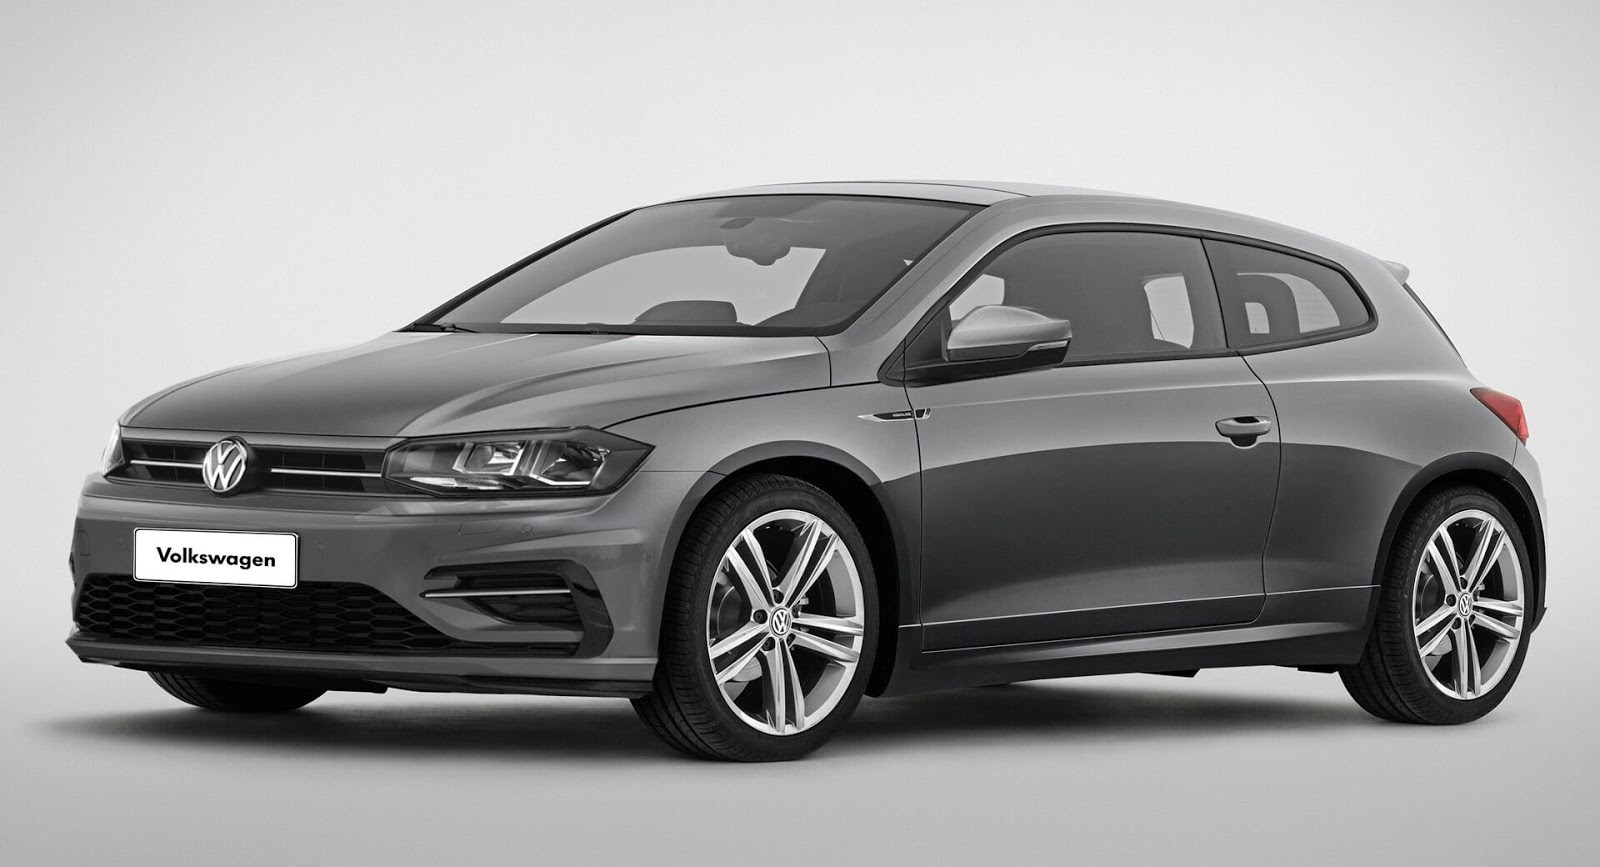 18 Best 2020 Volkswagen Scirocco New Review